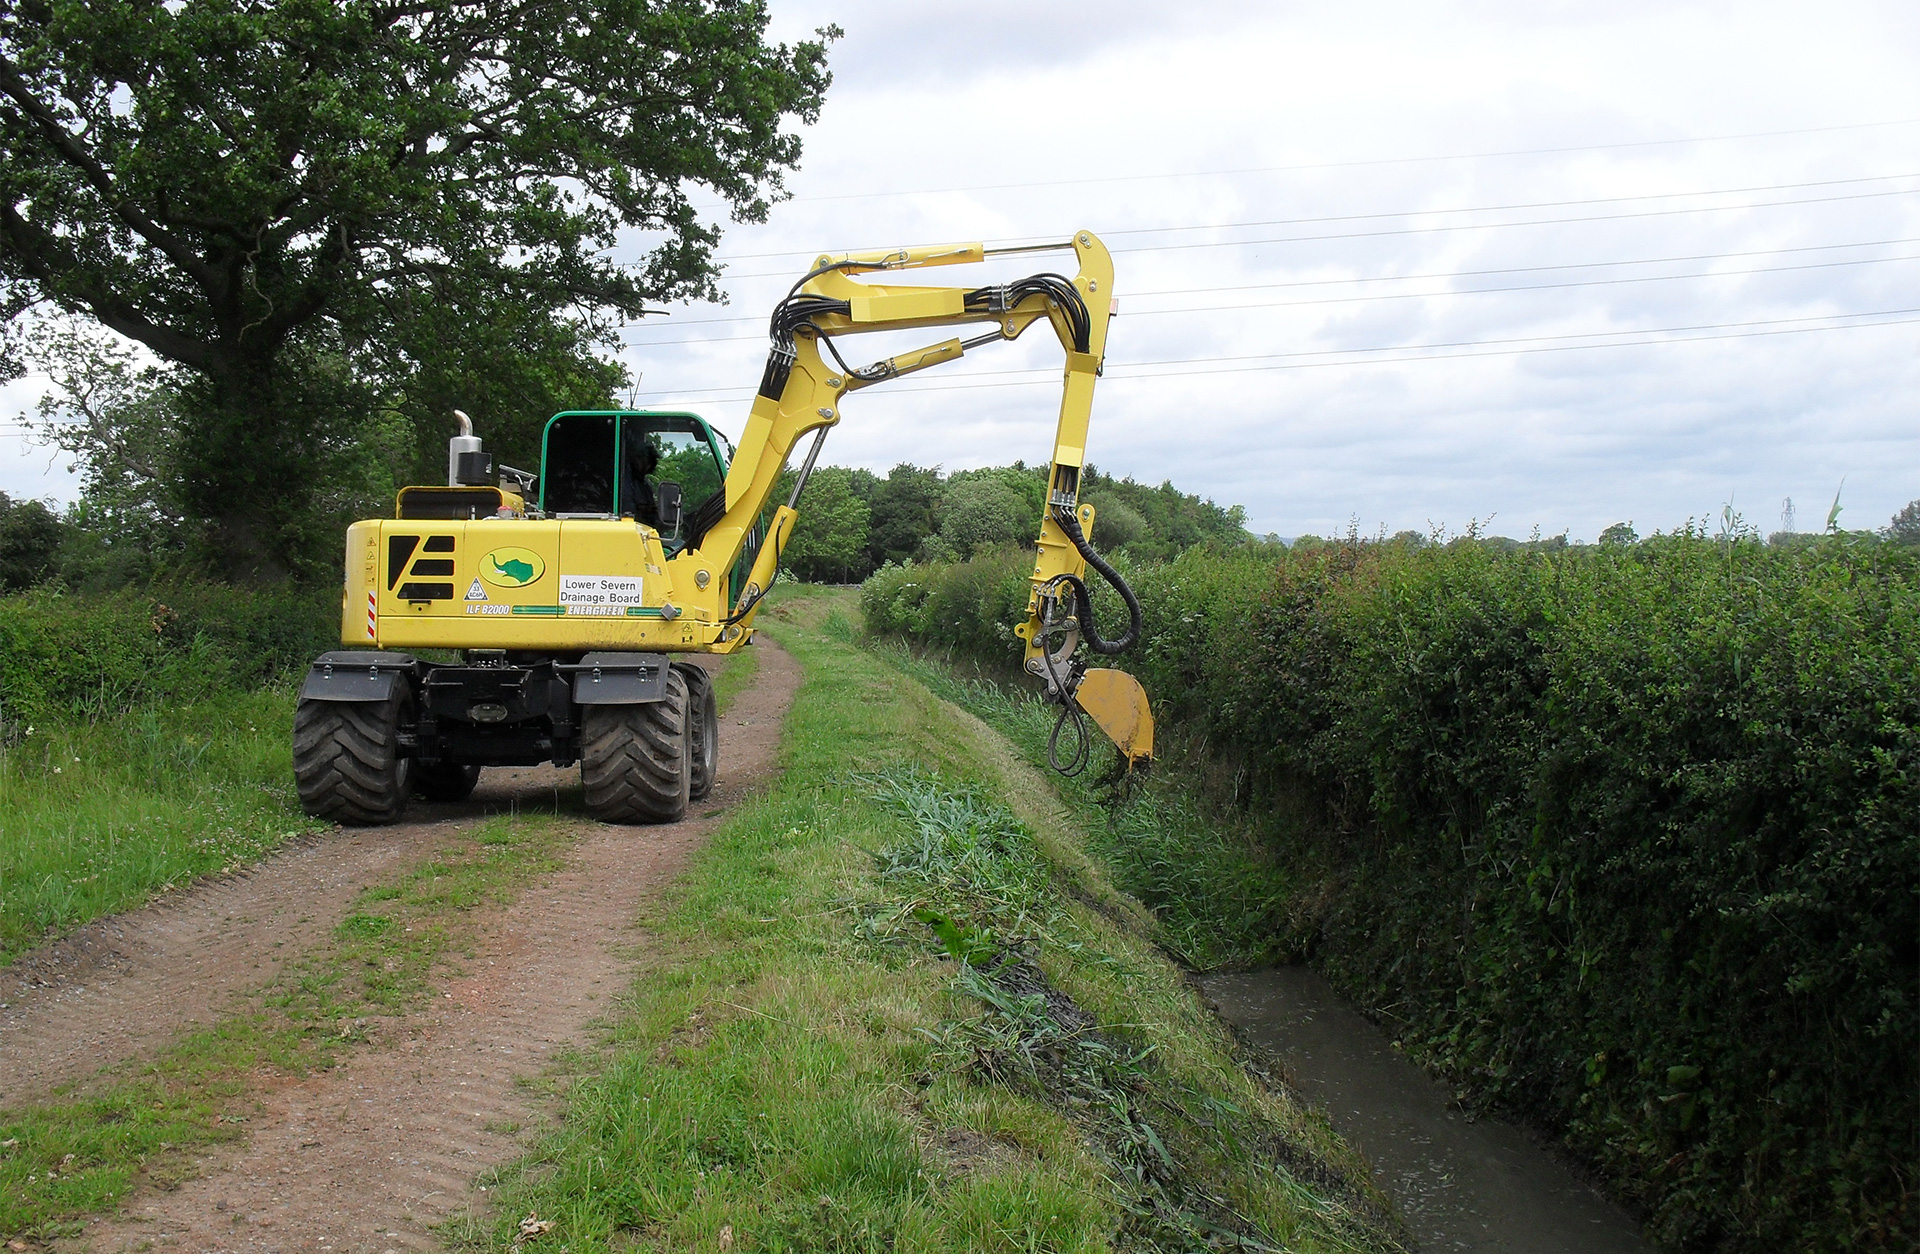 Digger working at roadside ditch